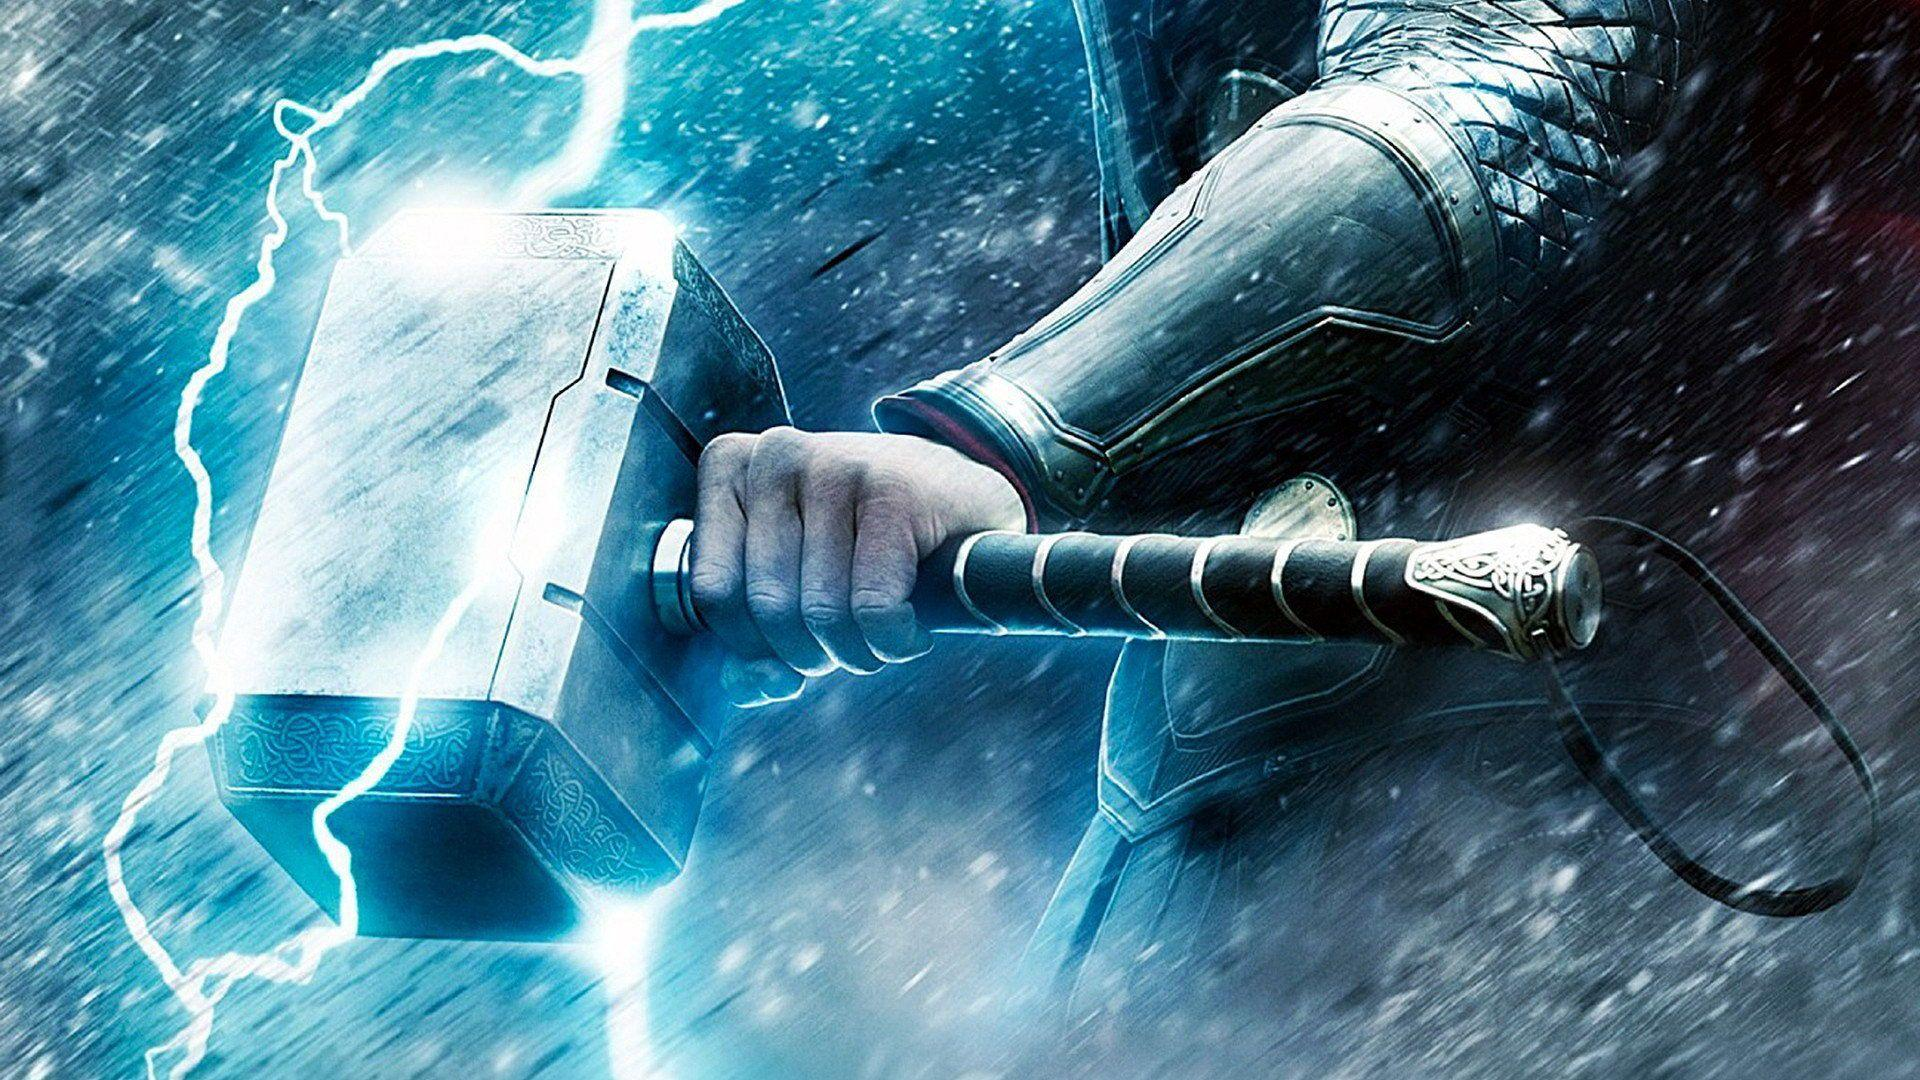 Thor Hammer Hd Wallpapers Wallpaper Cave